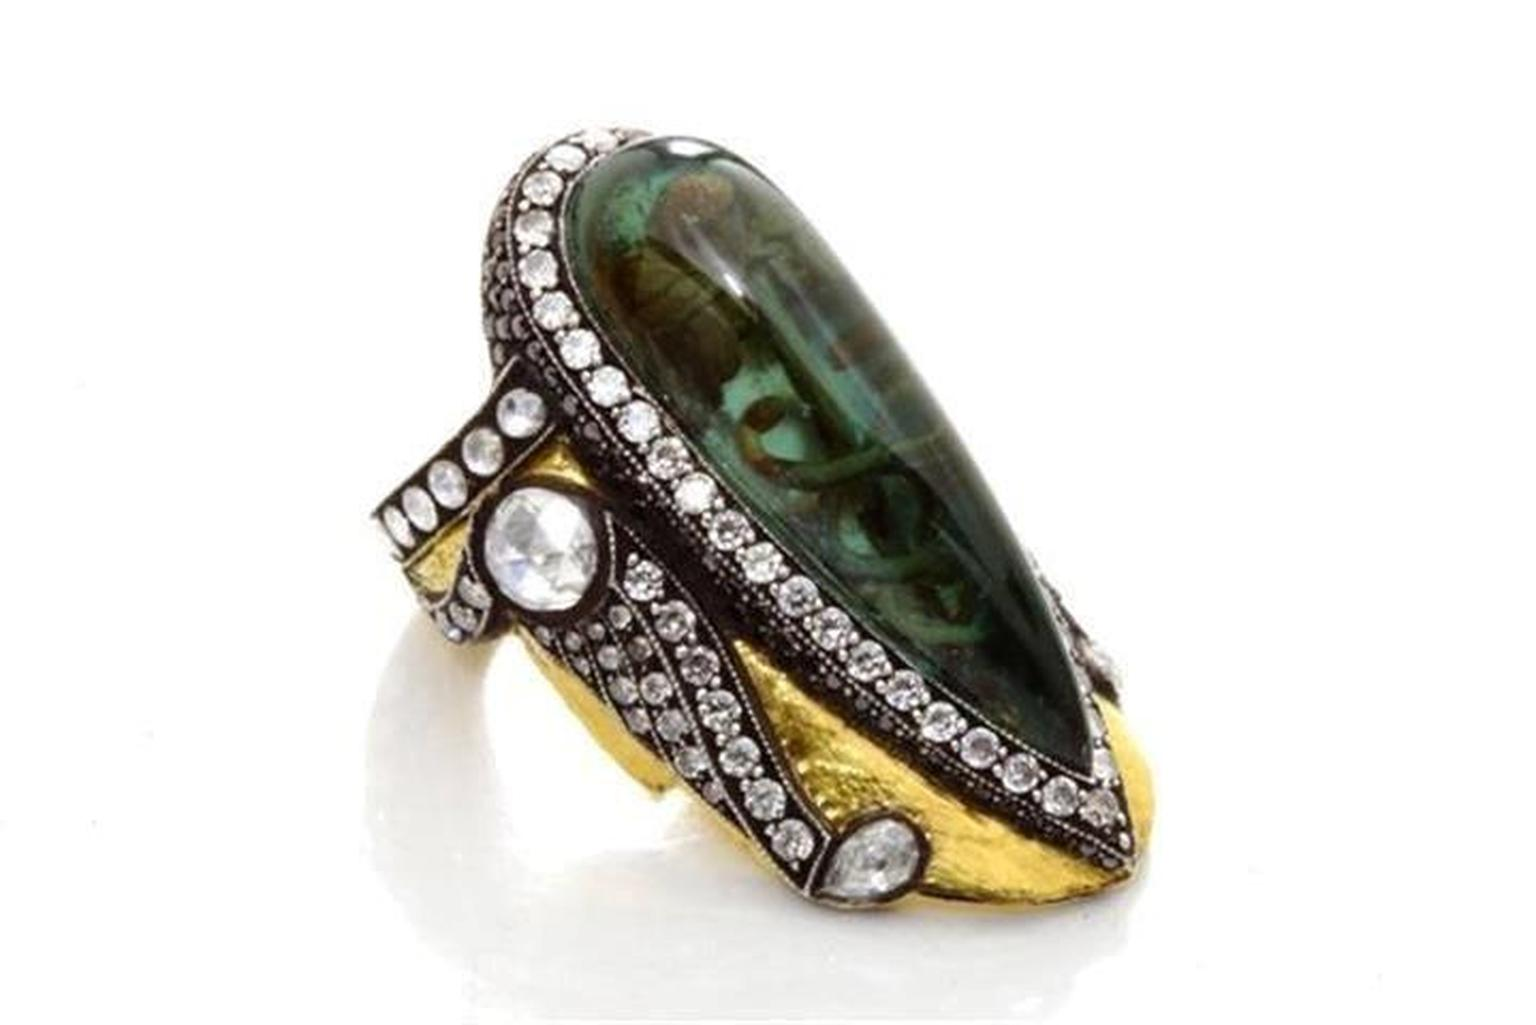 Sevan Biçakçi one-of-a-kind gold and sterling silver ring featuring an inversely carved green tourmaline centre stone with an intaglio inscription surrounded by diamonds.